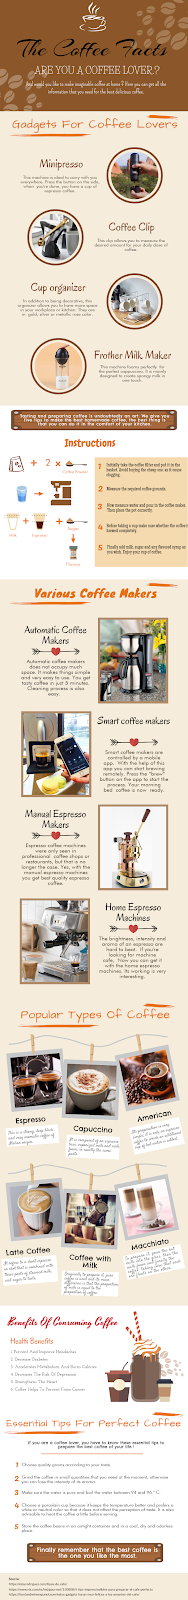 HOW TO MAKE A DELICIOUS COFFEE